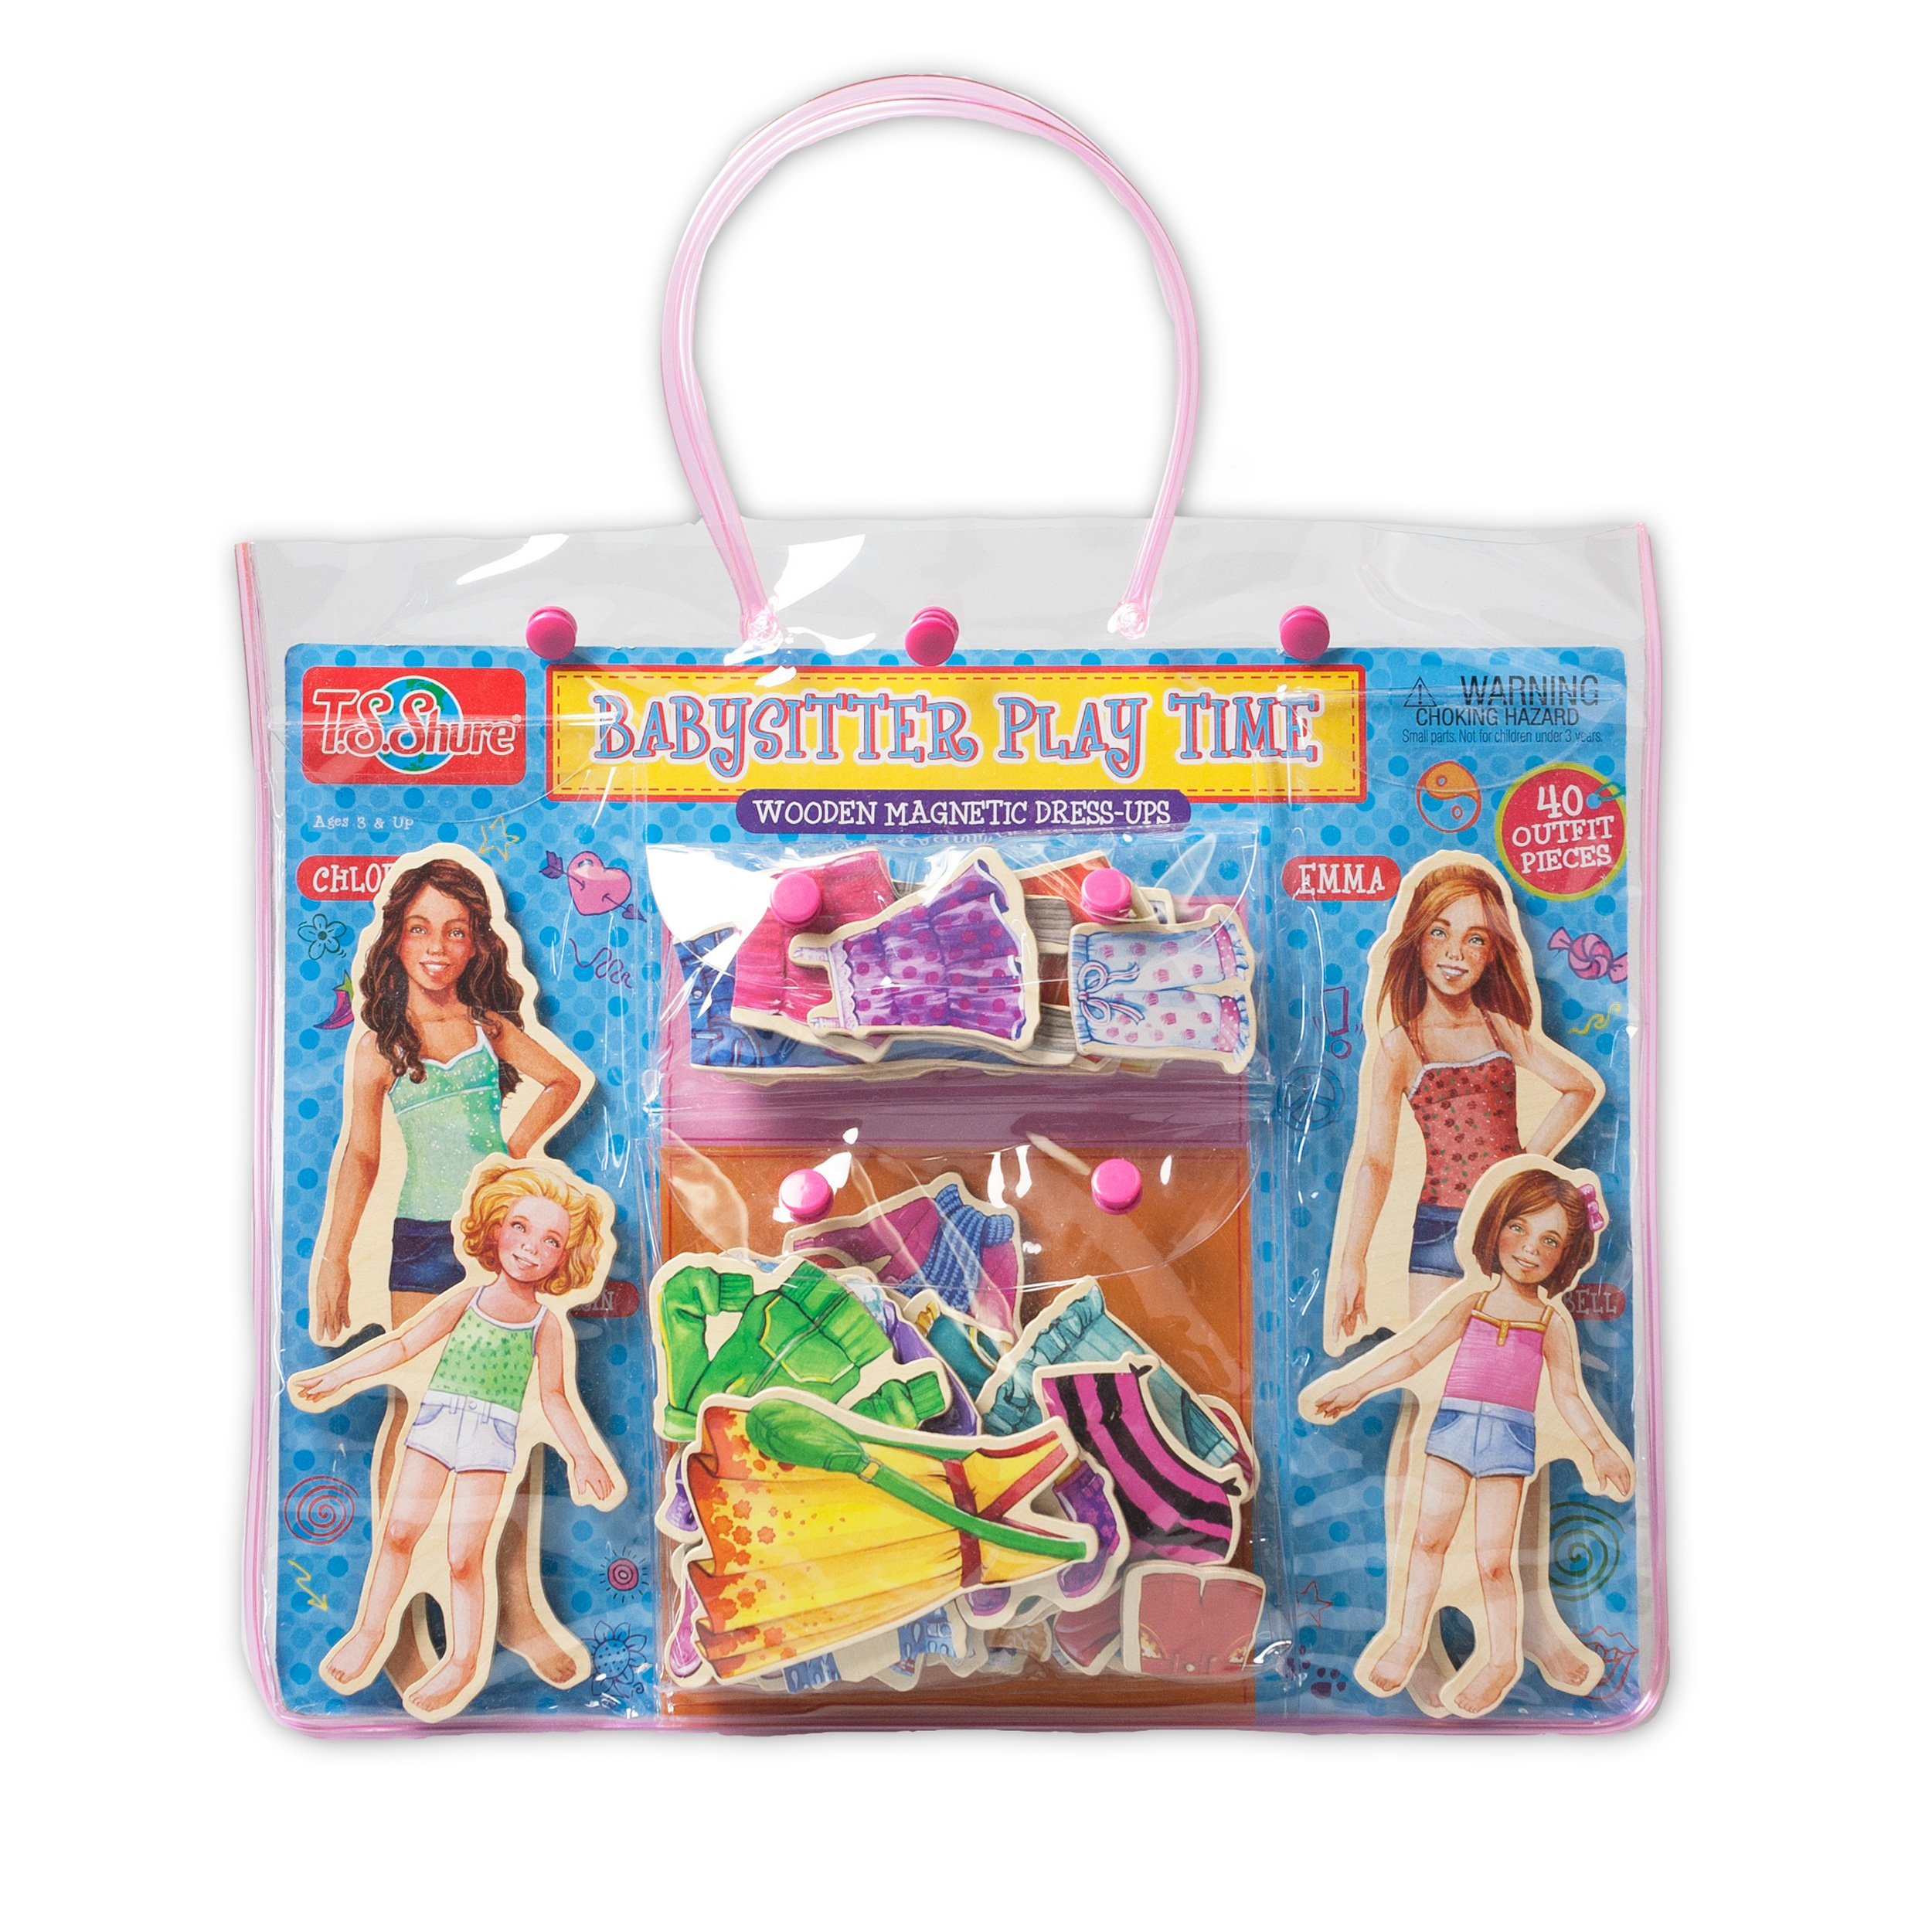 T.S. Shure Babysitter Play Time Wooden Magnetic Dress-Up Doll by T.S. Shure